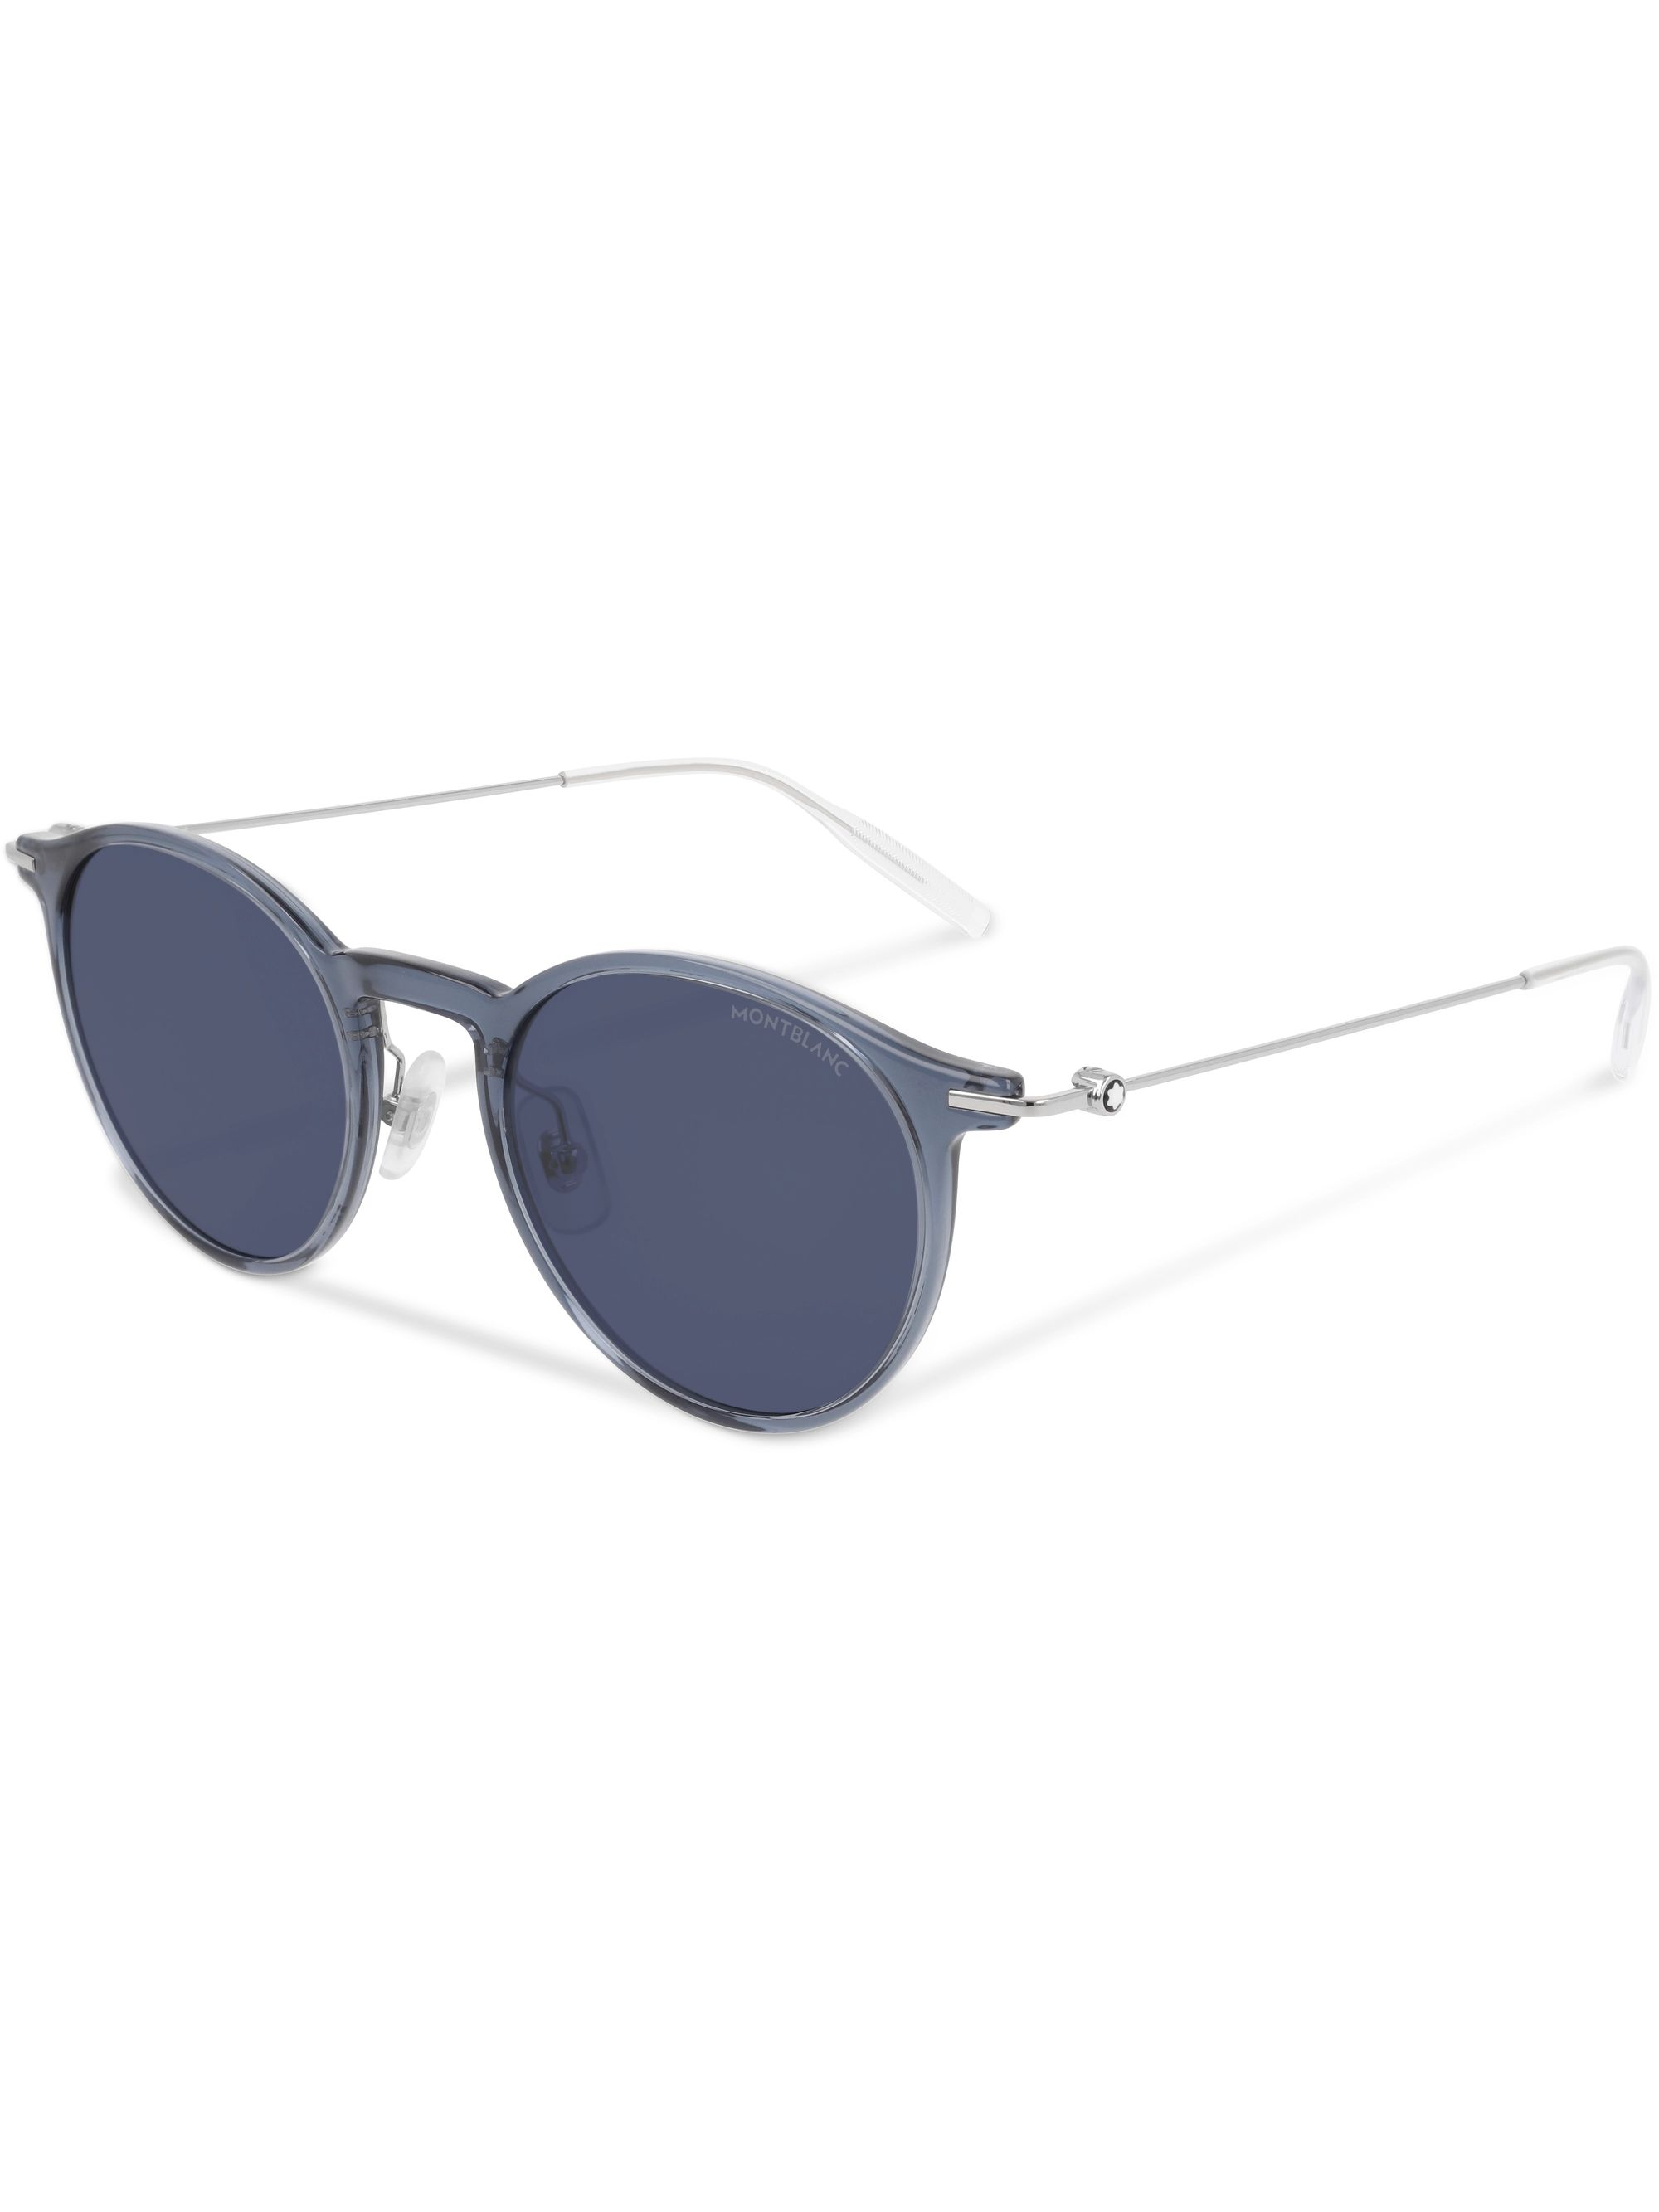 Montblanc Round-Frame Silver-Tone and Acetate Sunglasses